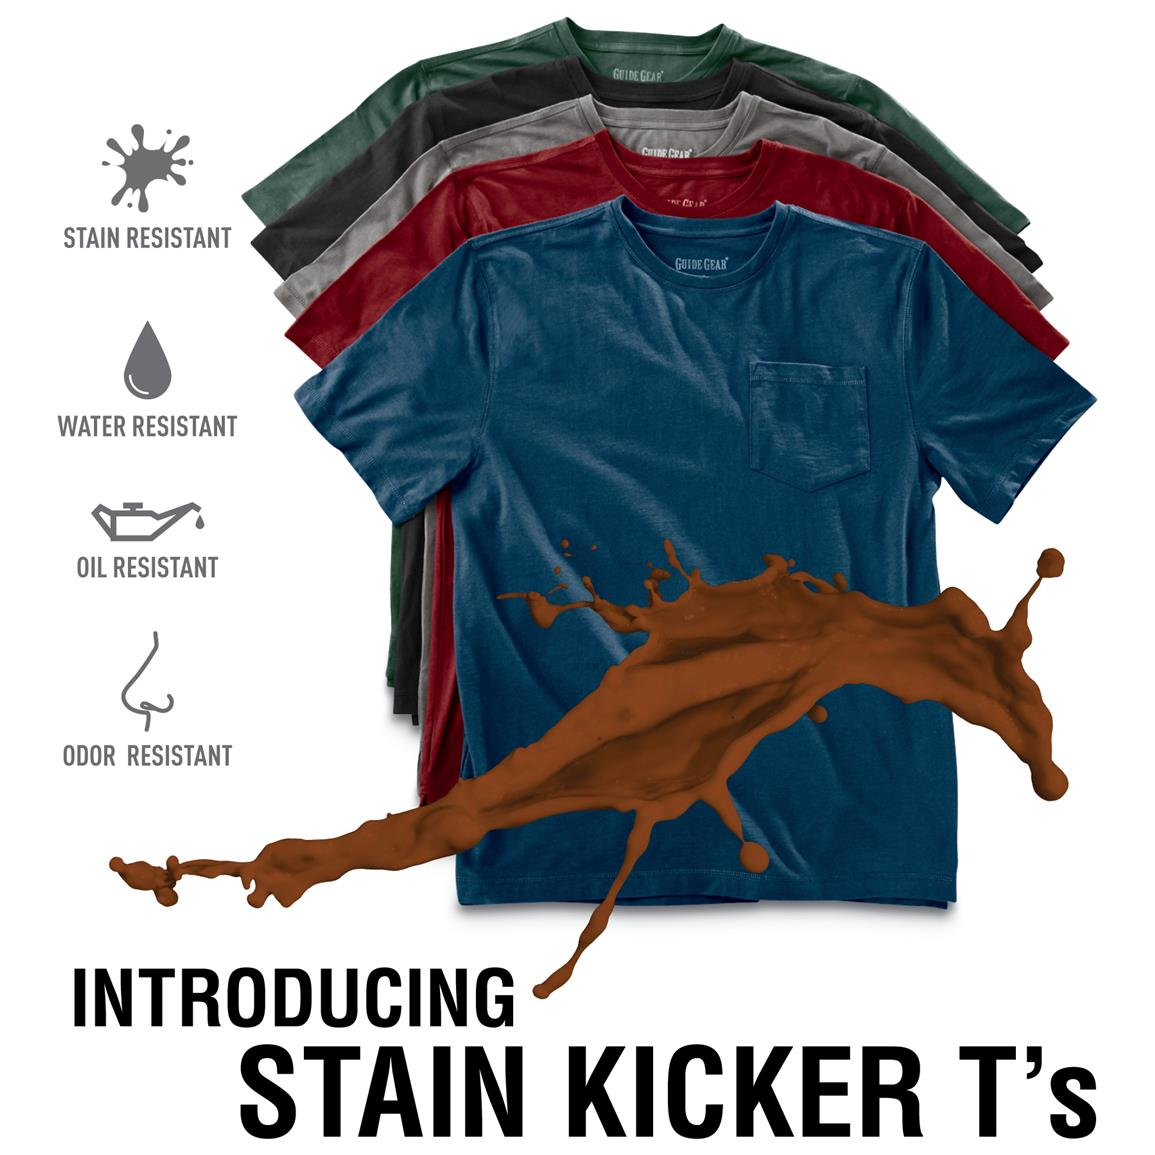 Introducing Stain Kicker T's!